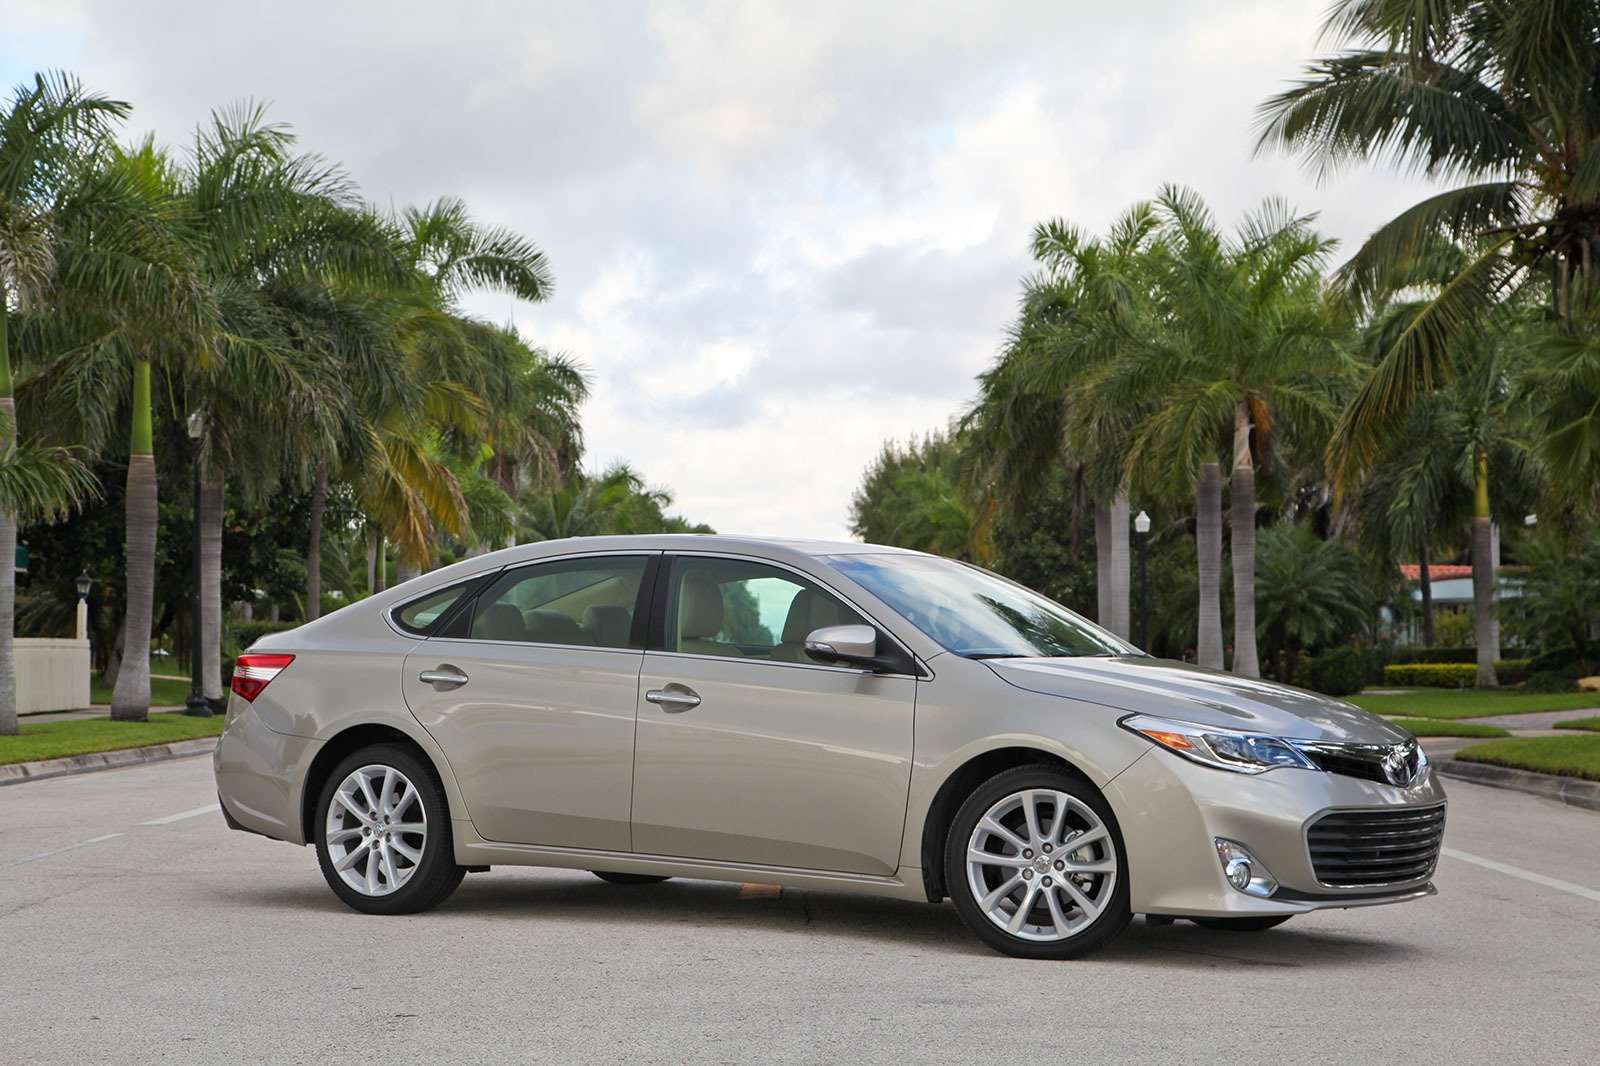 2013 toyota avalon review top speed. Black Bedroom Furniture Sets. Home Design Ideas